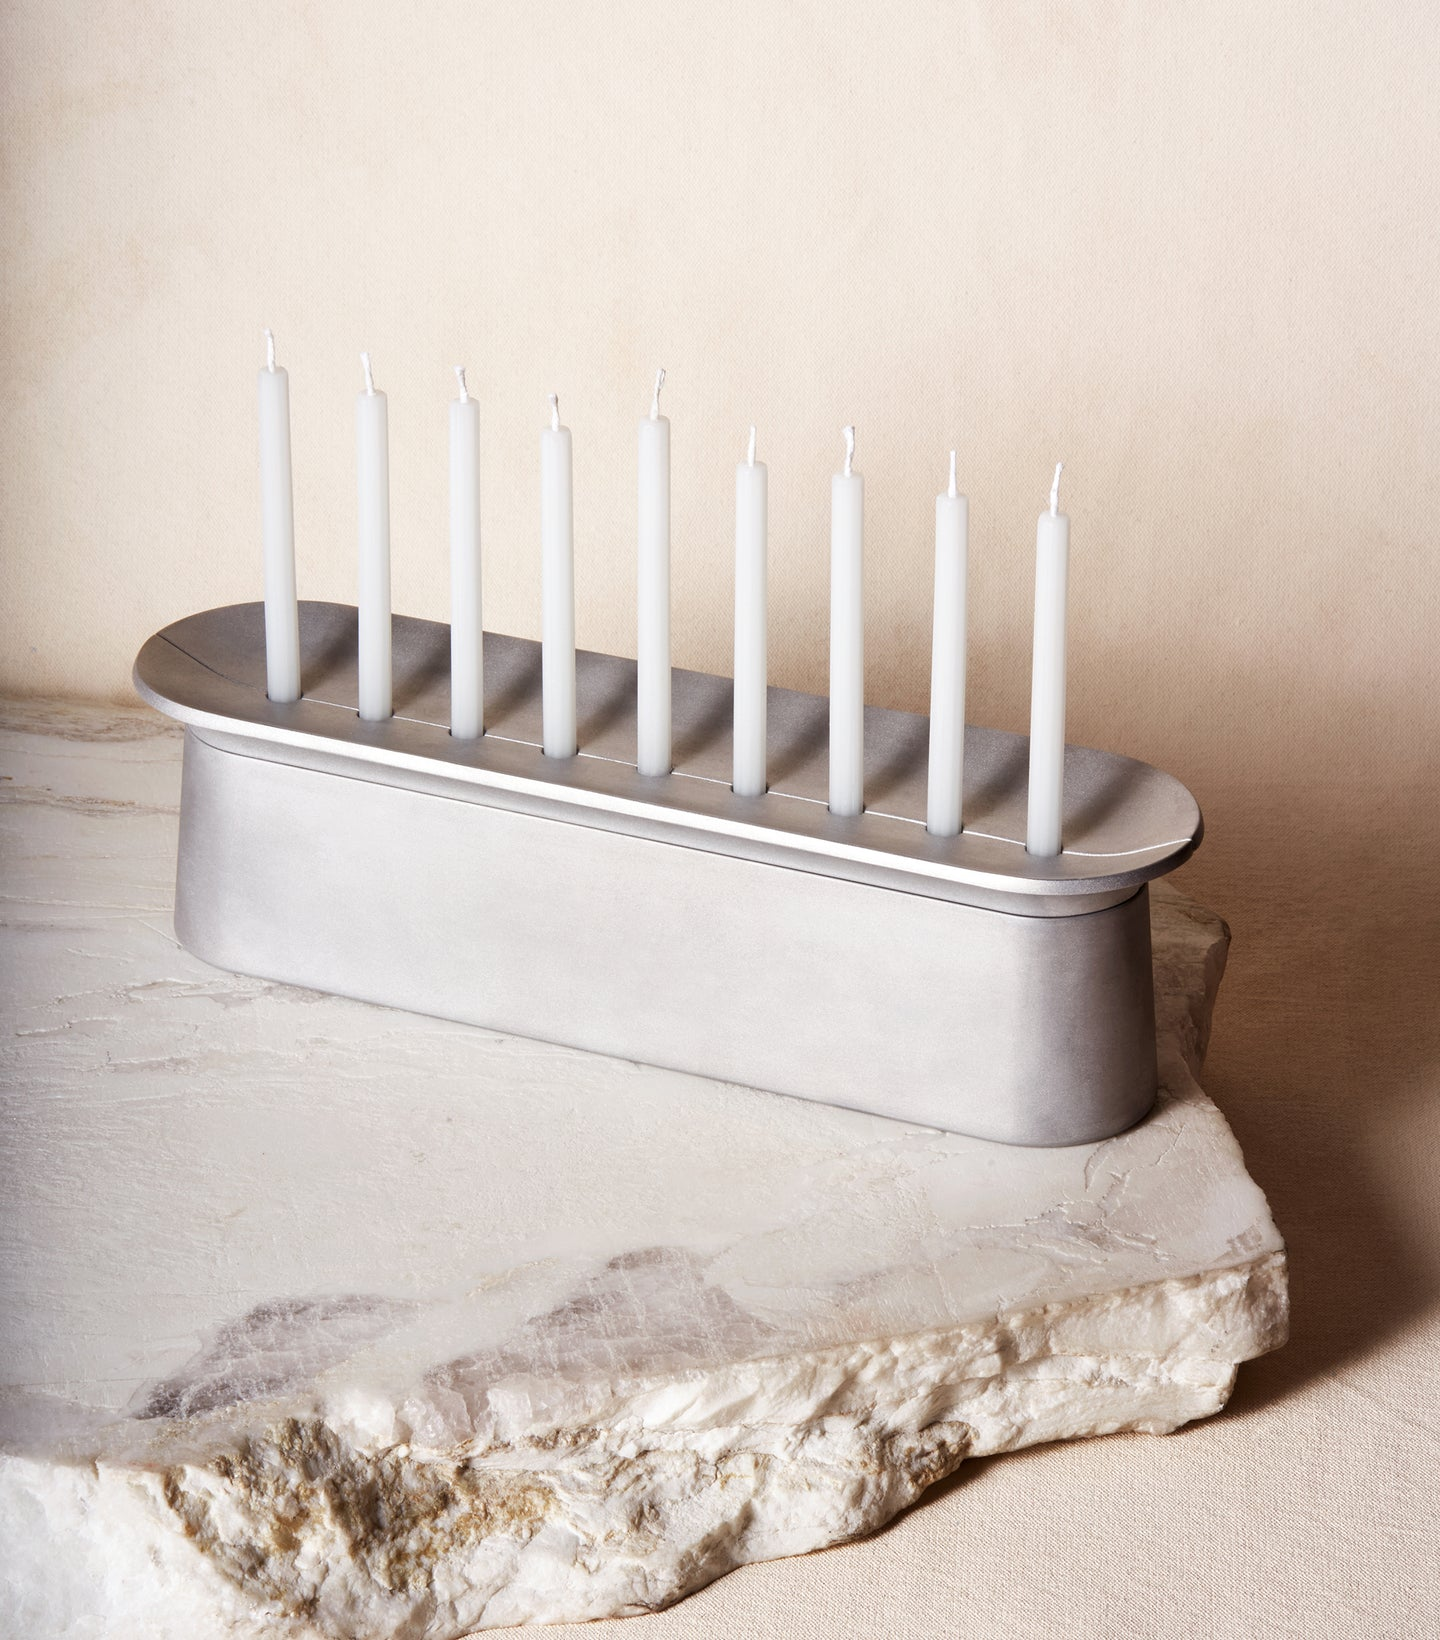 Load image into Gallery viewer, Block Chanukiah in Brushed Aluminum with nine Chanukah candles